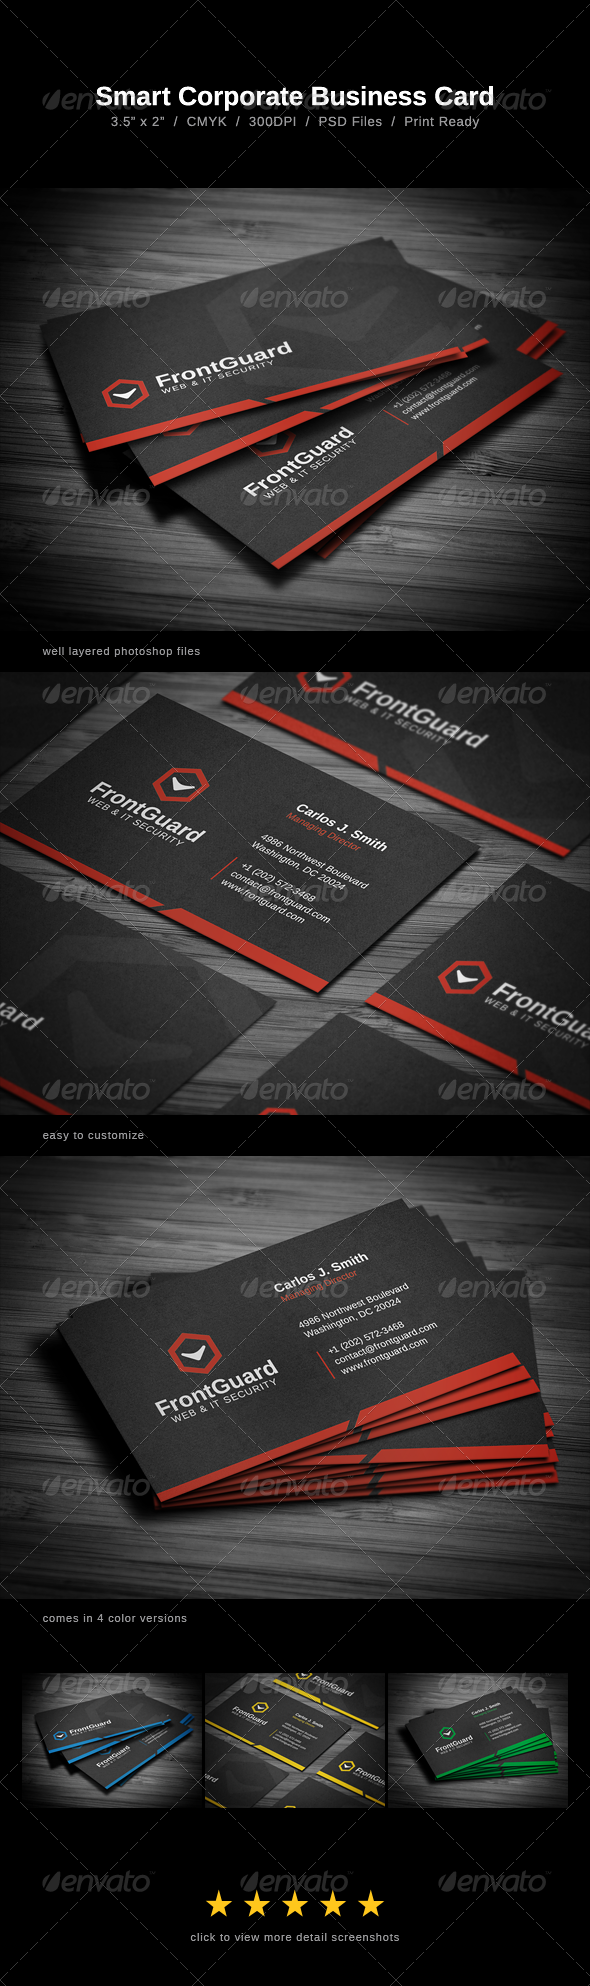 Smart Corporate Business Card - Business Cards Print Templates